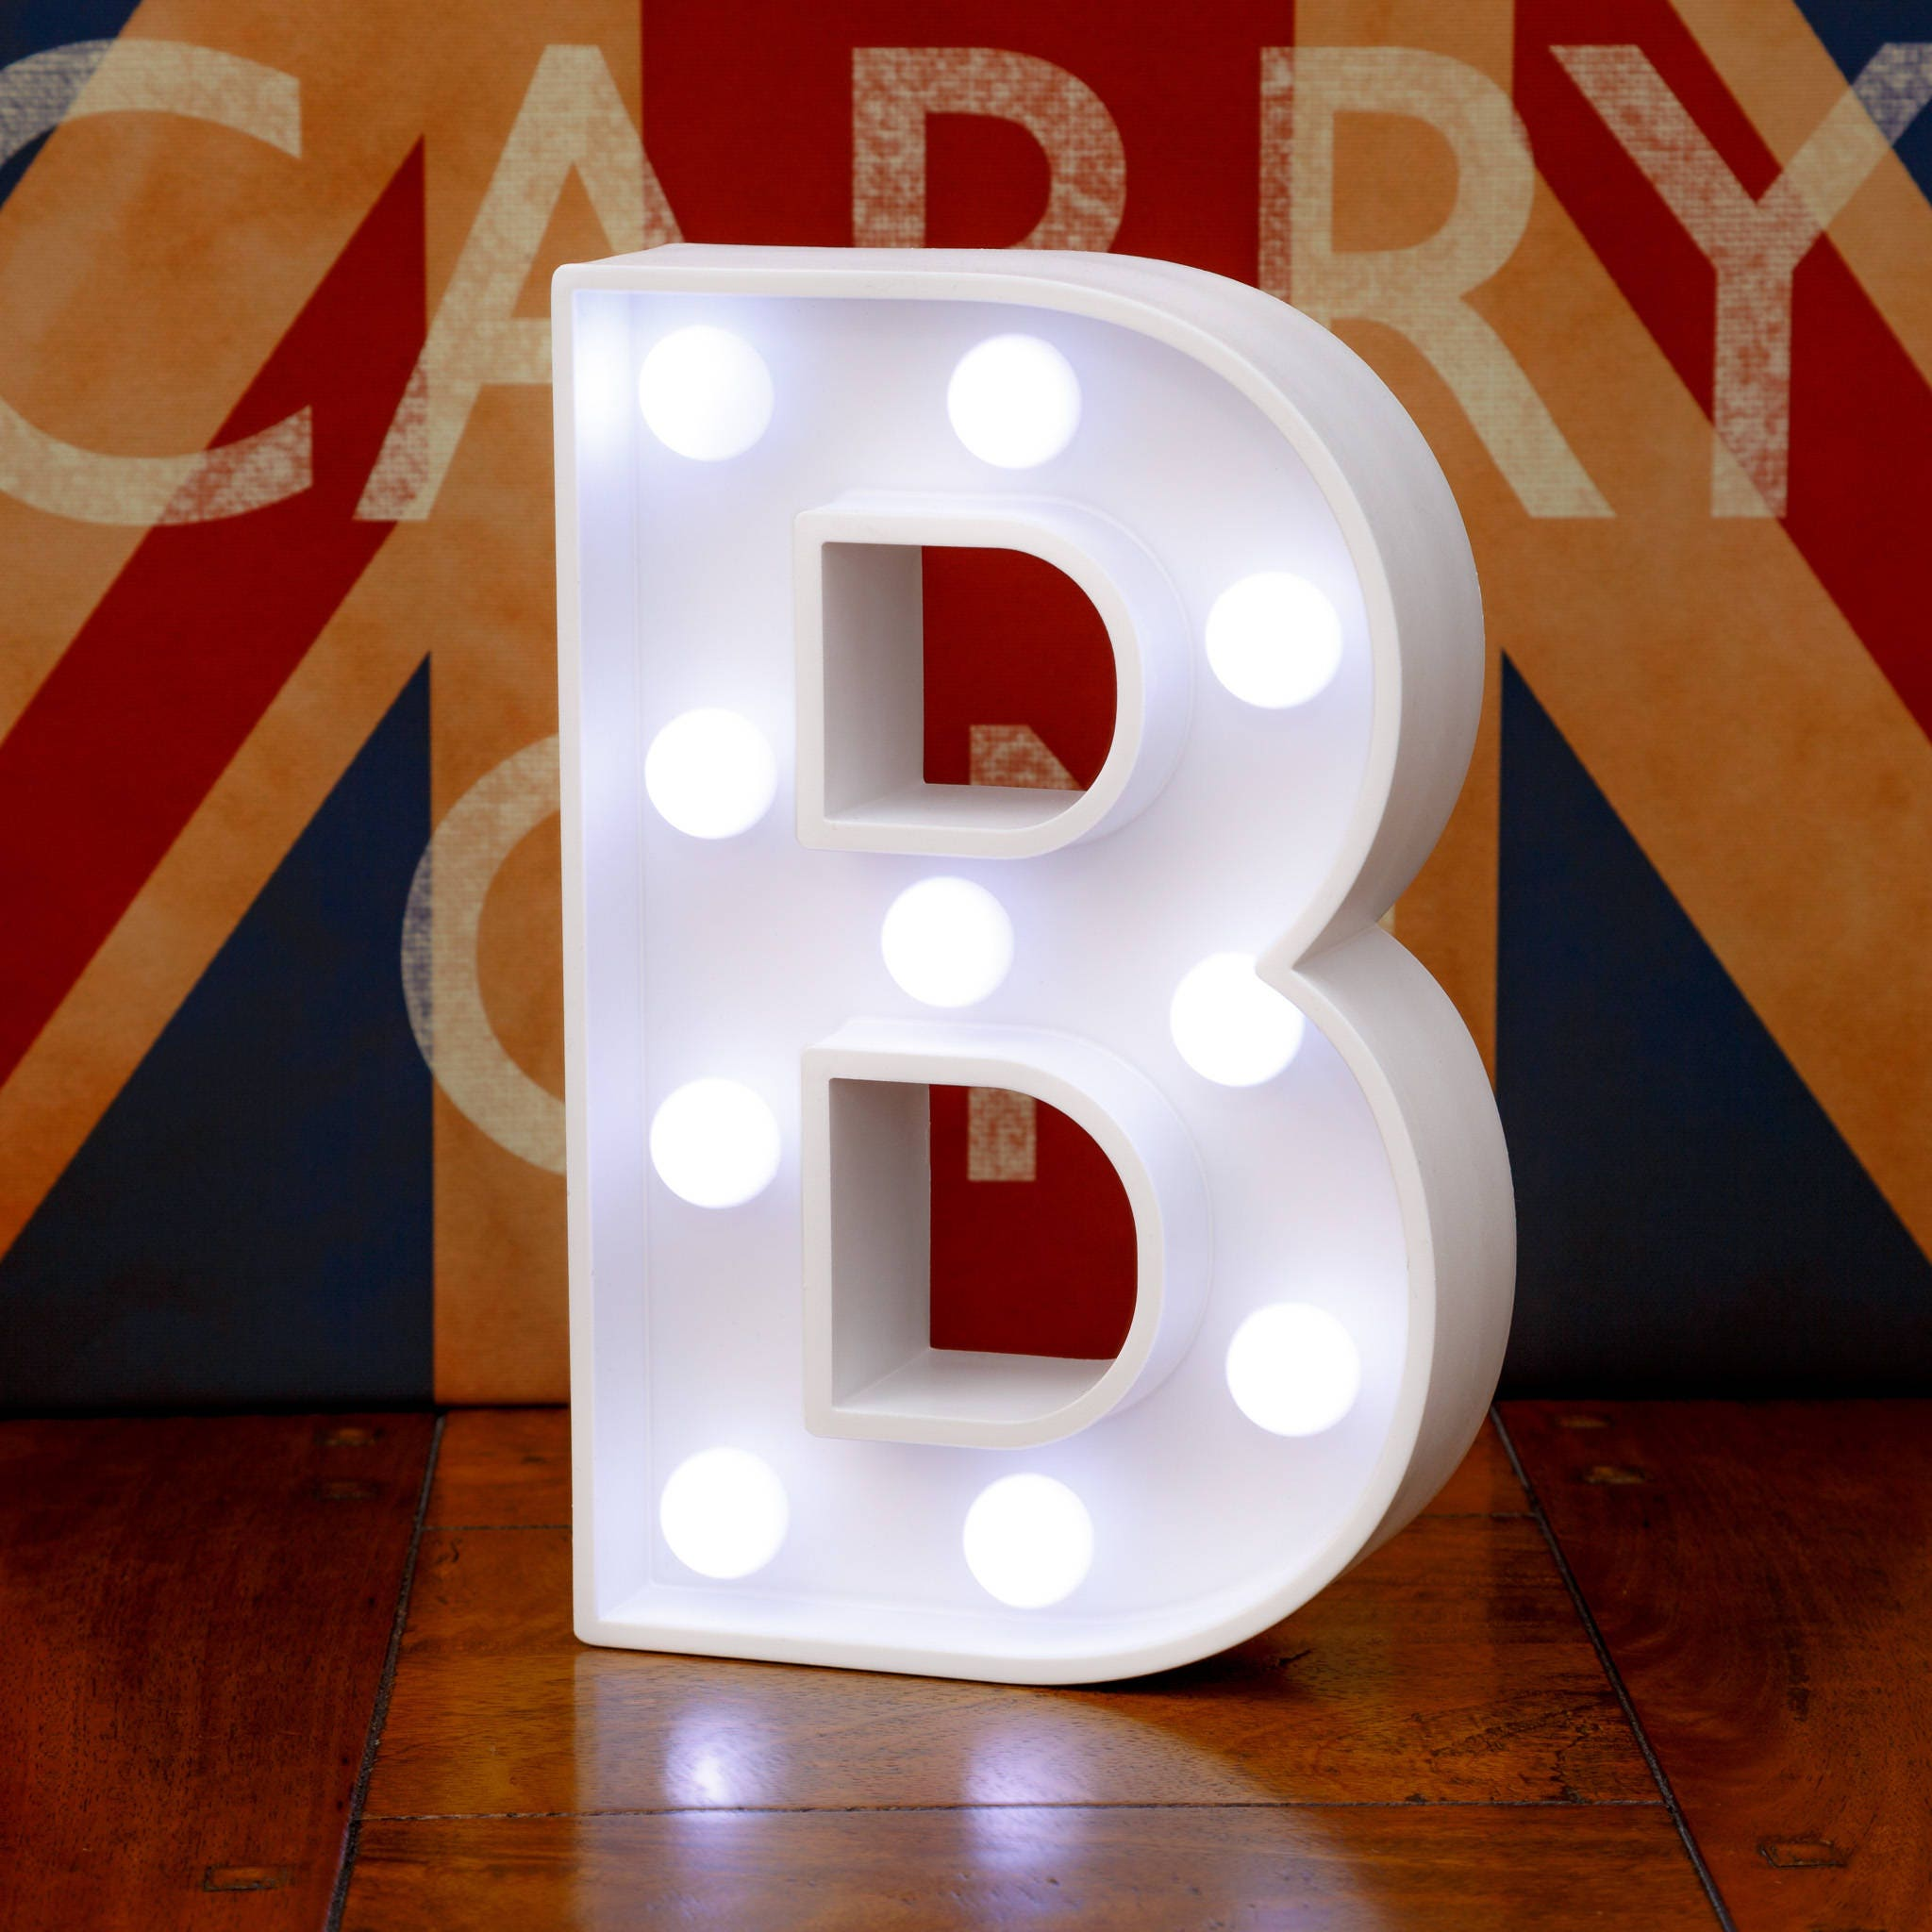 marquee light up letters light up letters b marquee letters led bedside lamp white 23581 | il fullxfull.1327789150 og2b